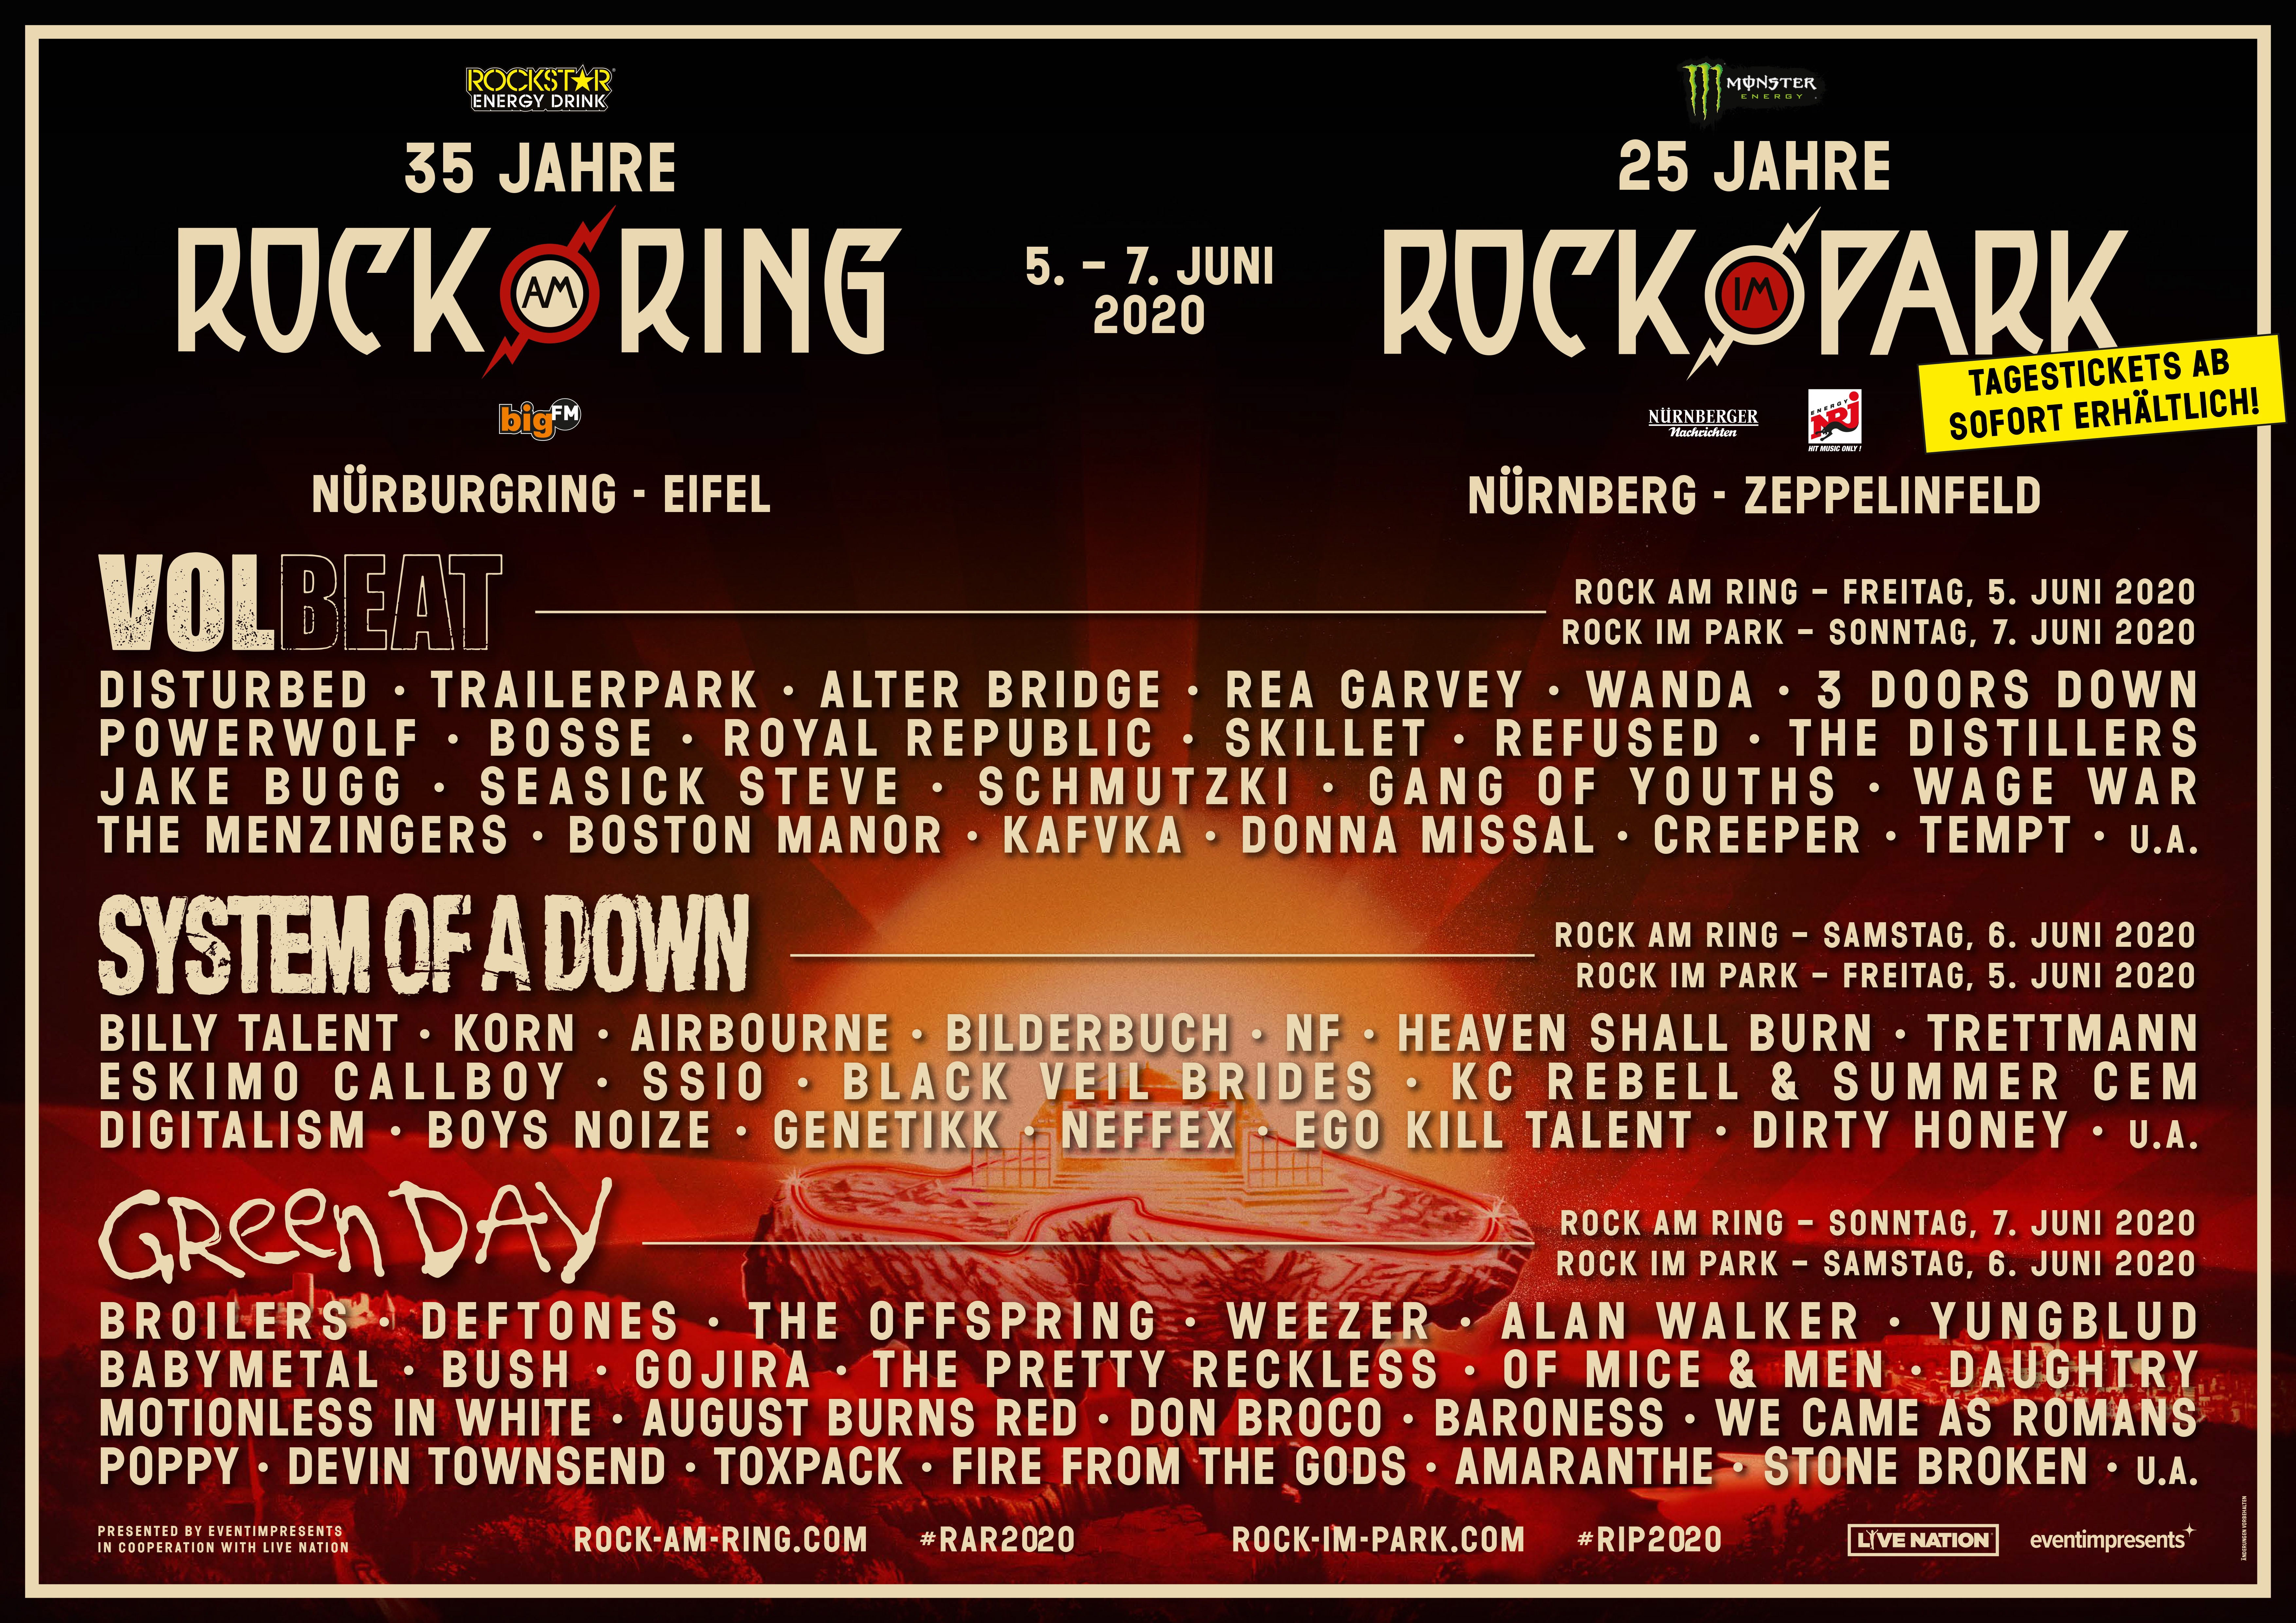 Rock am Ring 2020 / RaR 2020